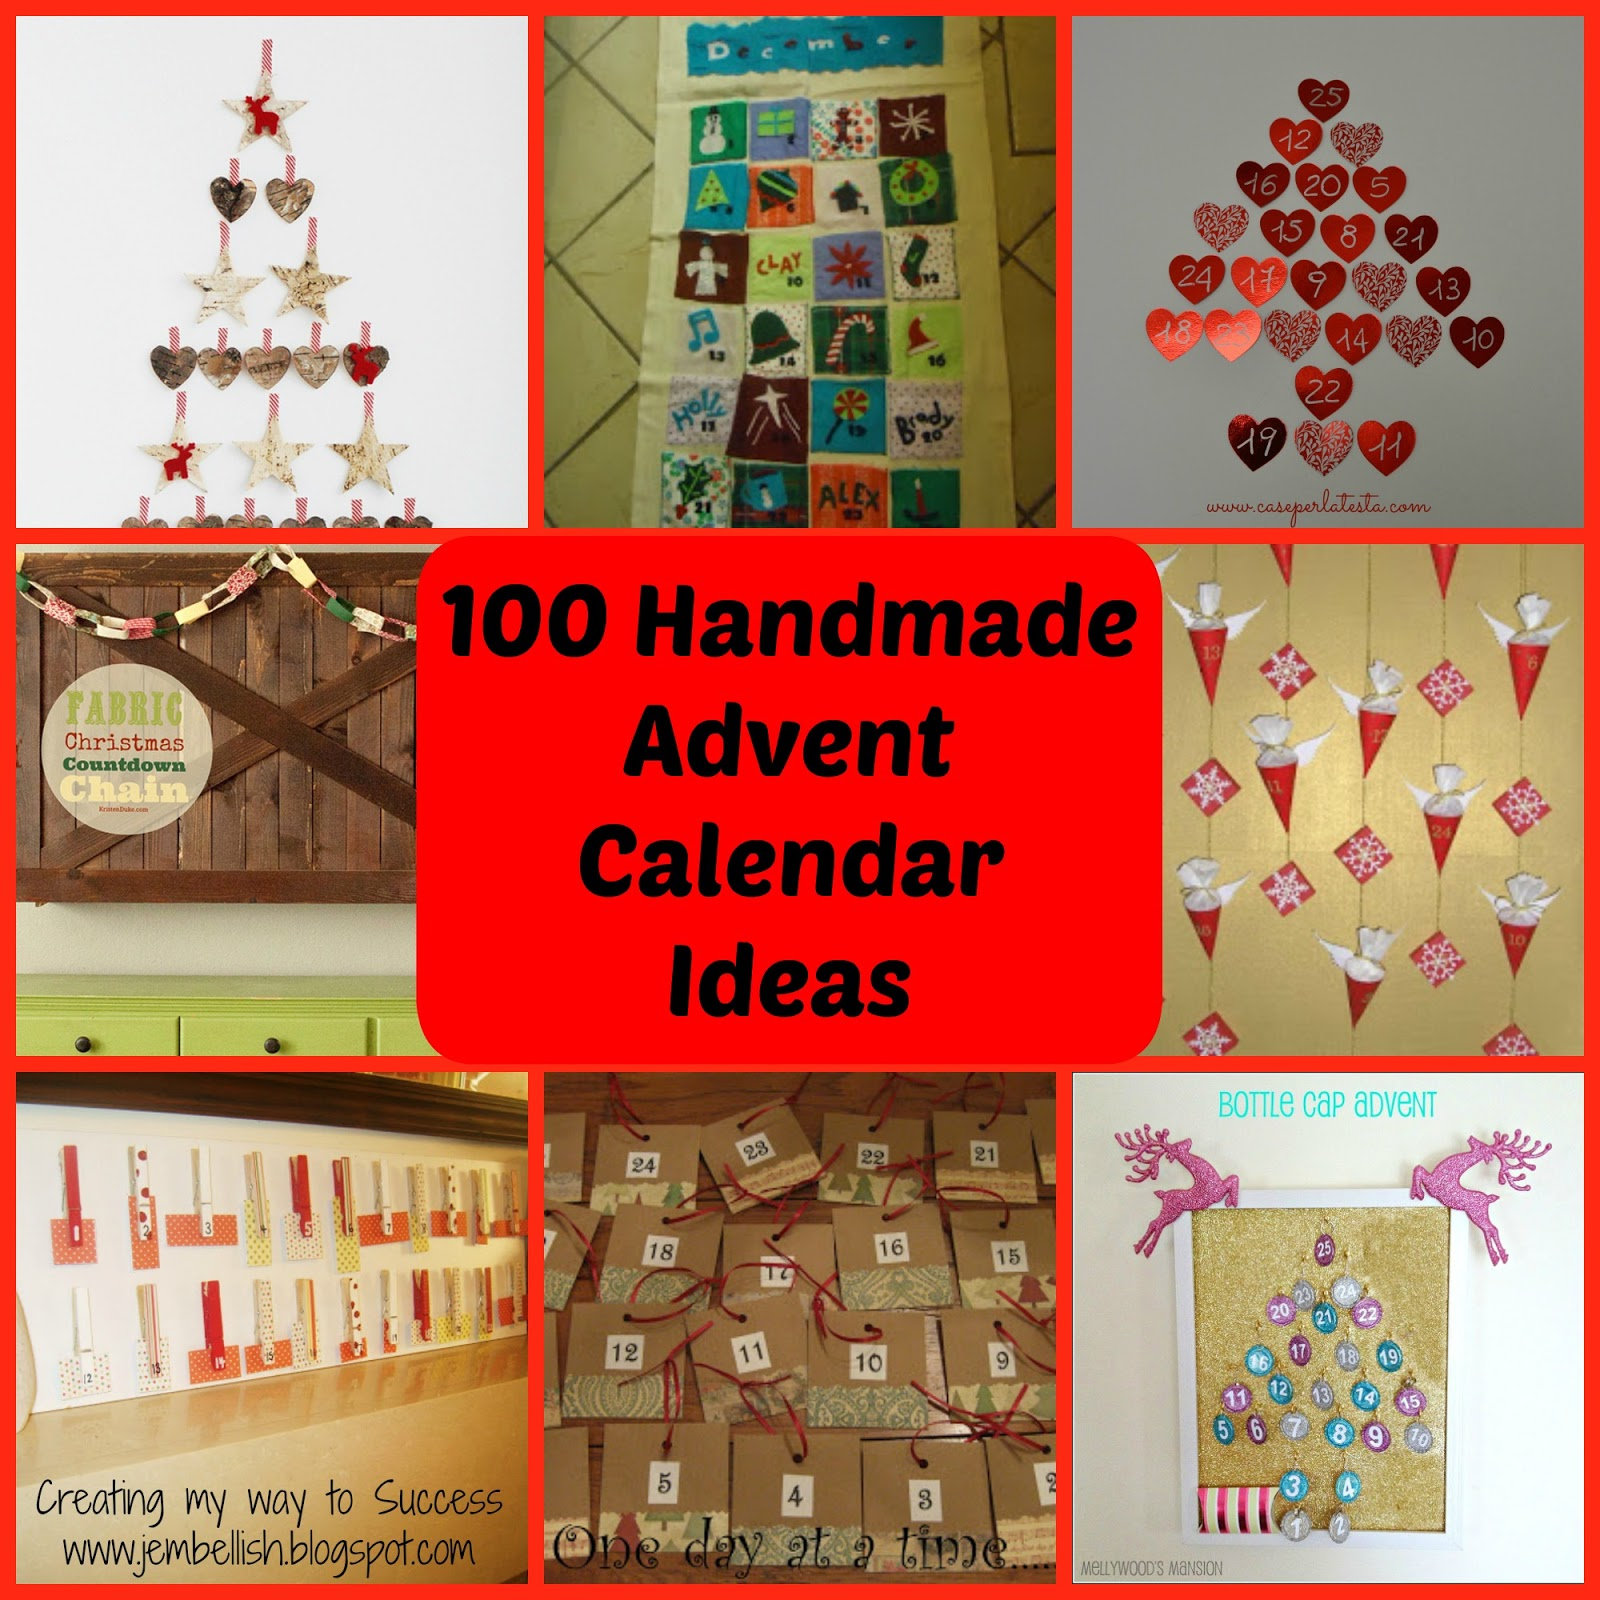 creating my way to success 100 ideas for handmade advent